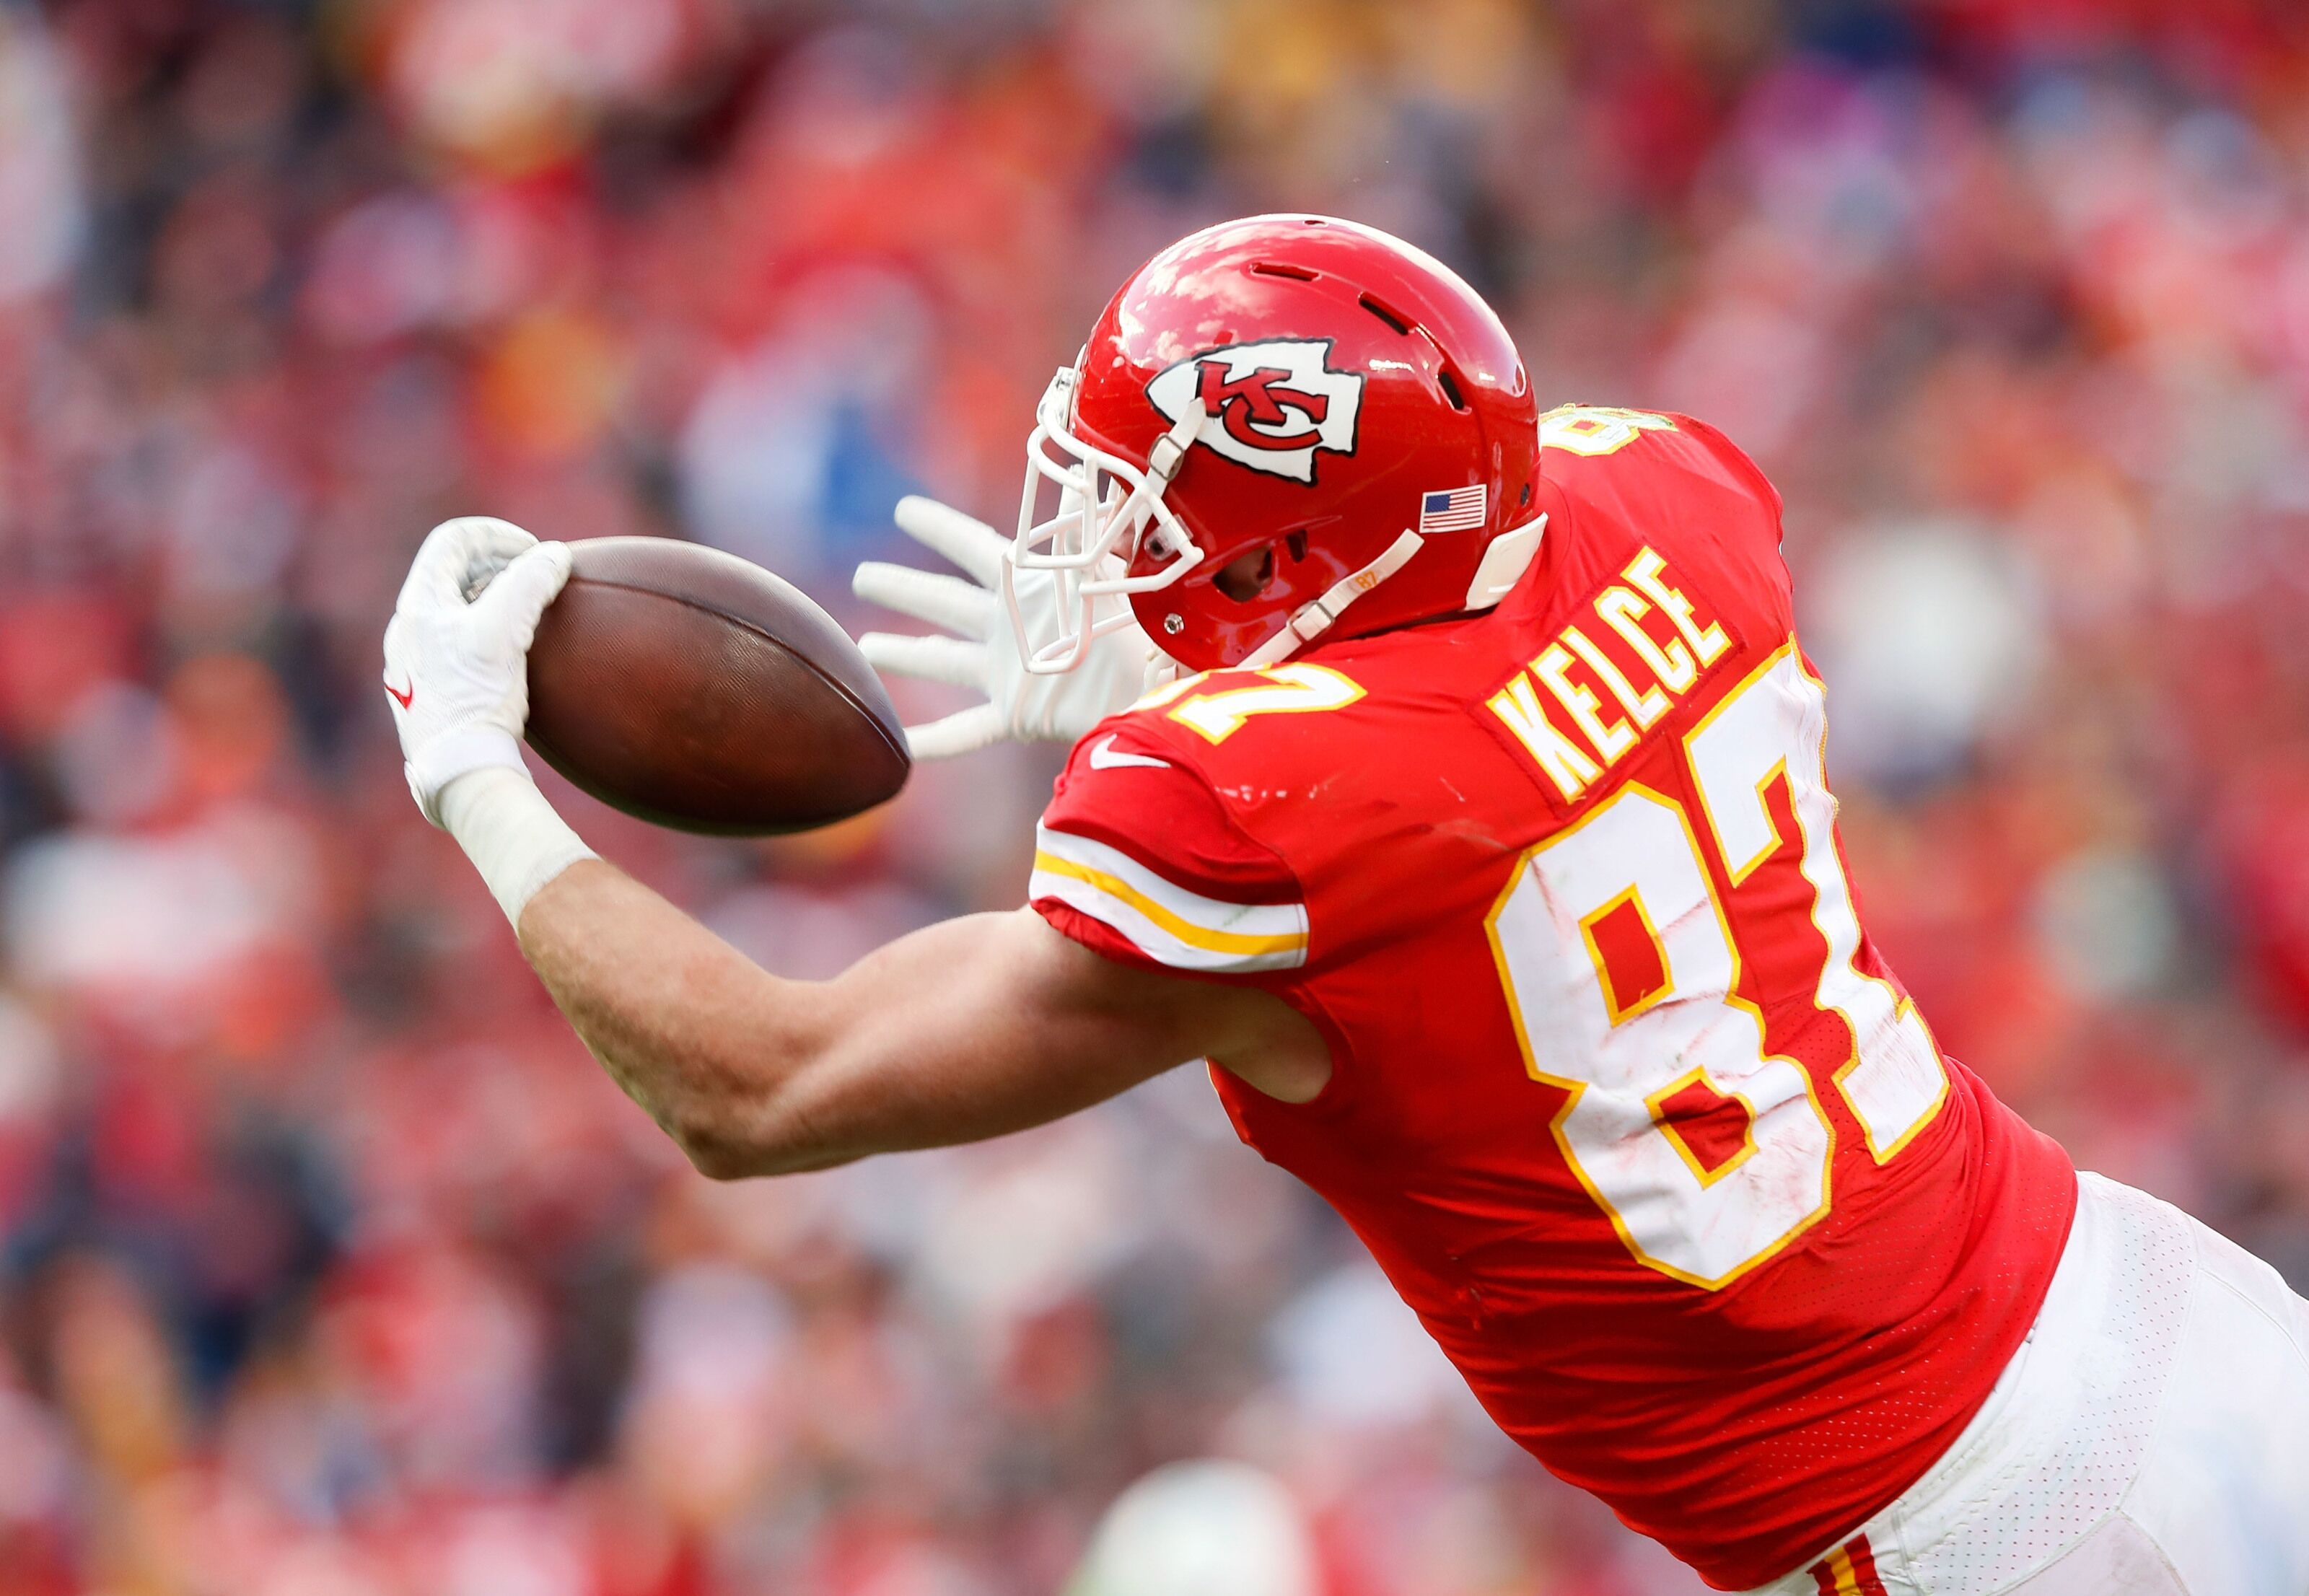 Espn Puts Travis Kelce Eric Berry And More Among Top 100 Players